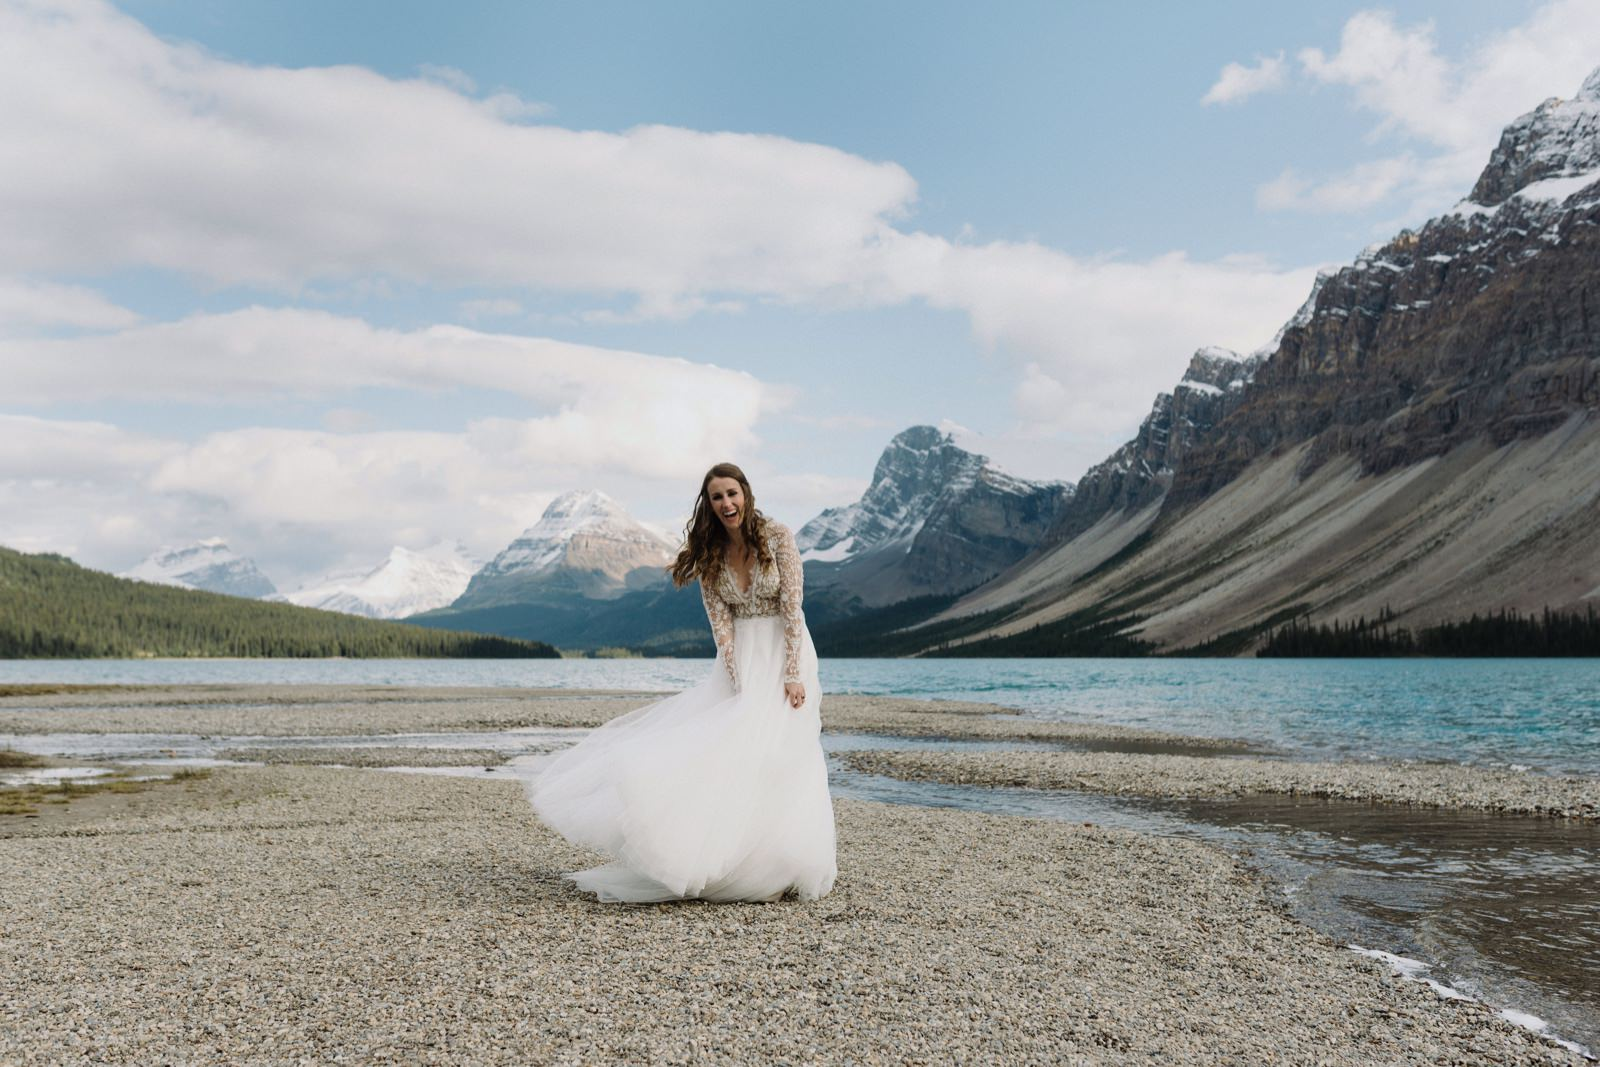 Bridal portrait session at Bow Lake In Banff National Park